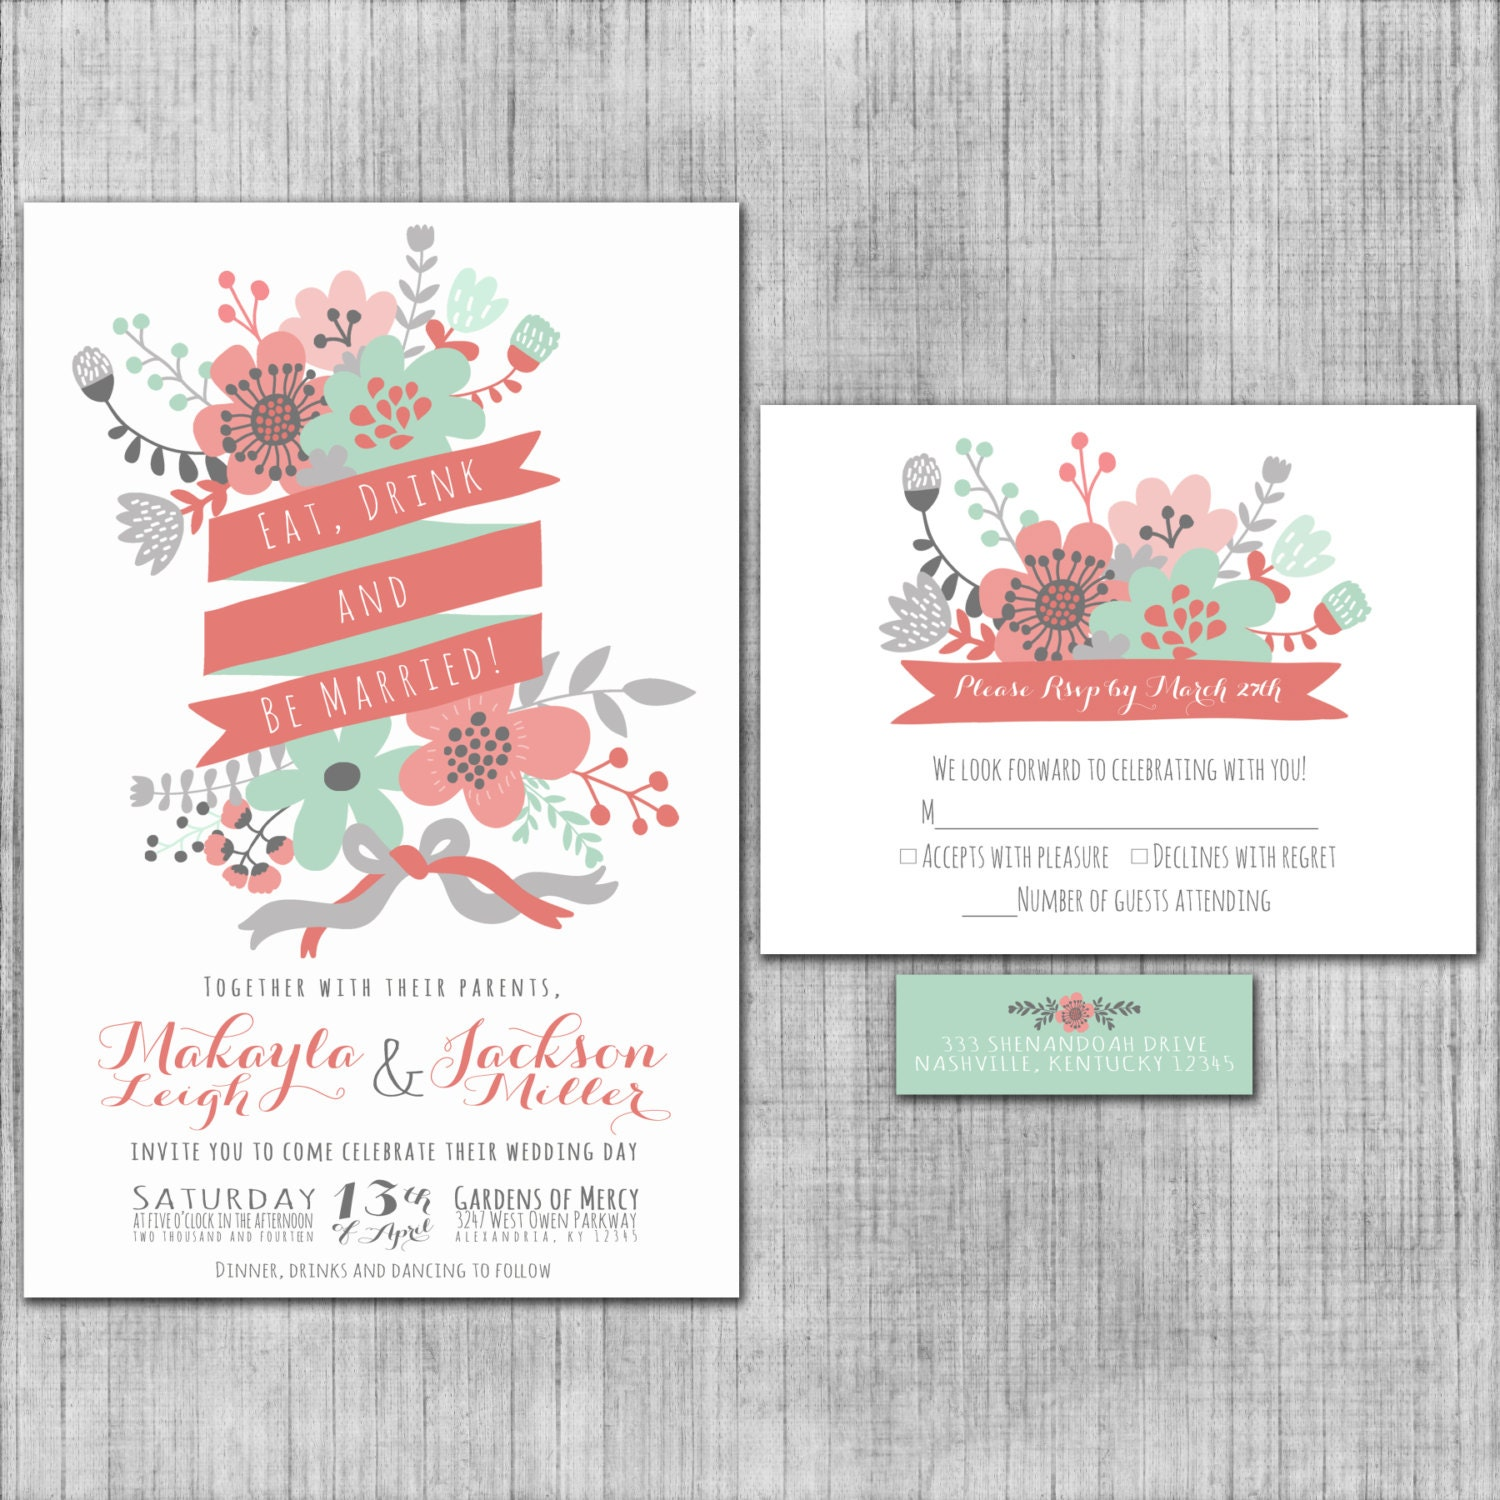 Mint Green And Pink Wedding Invitations Uk Yaseen for